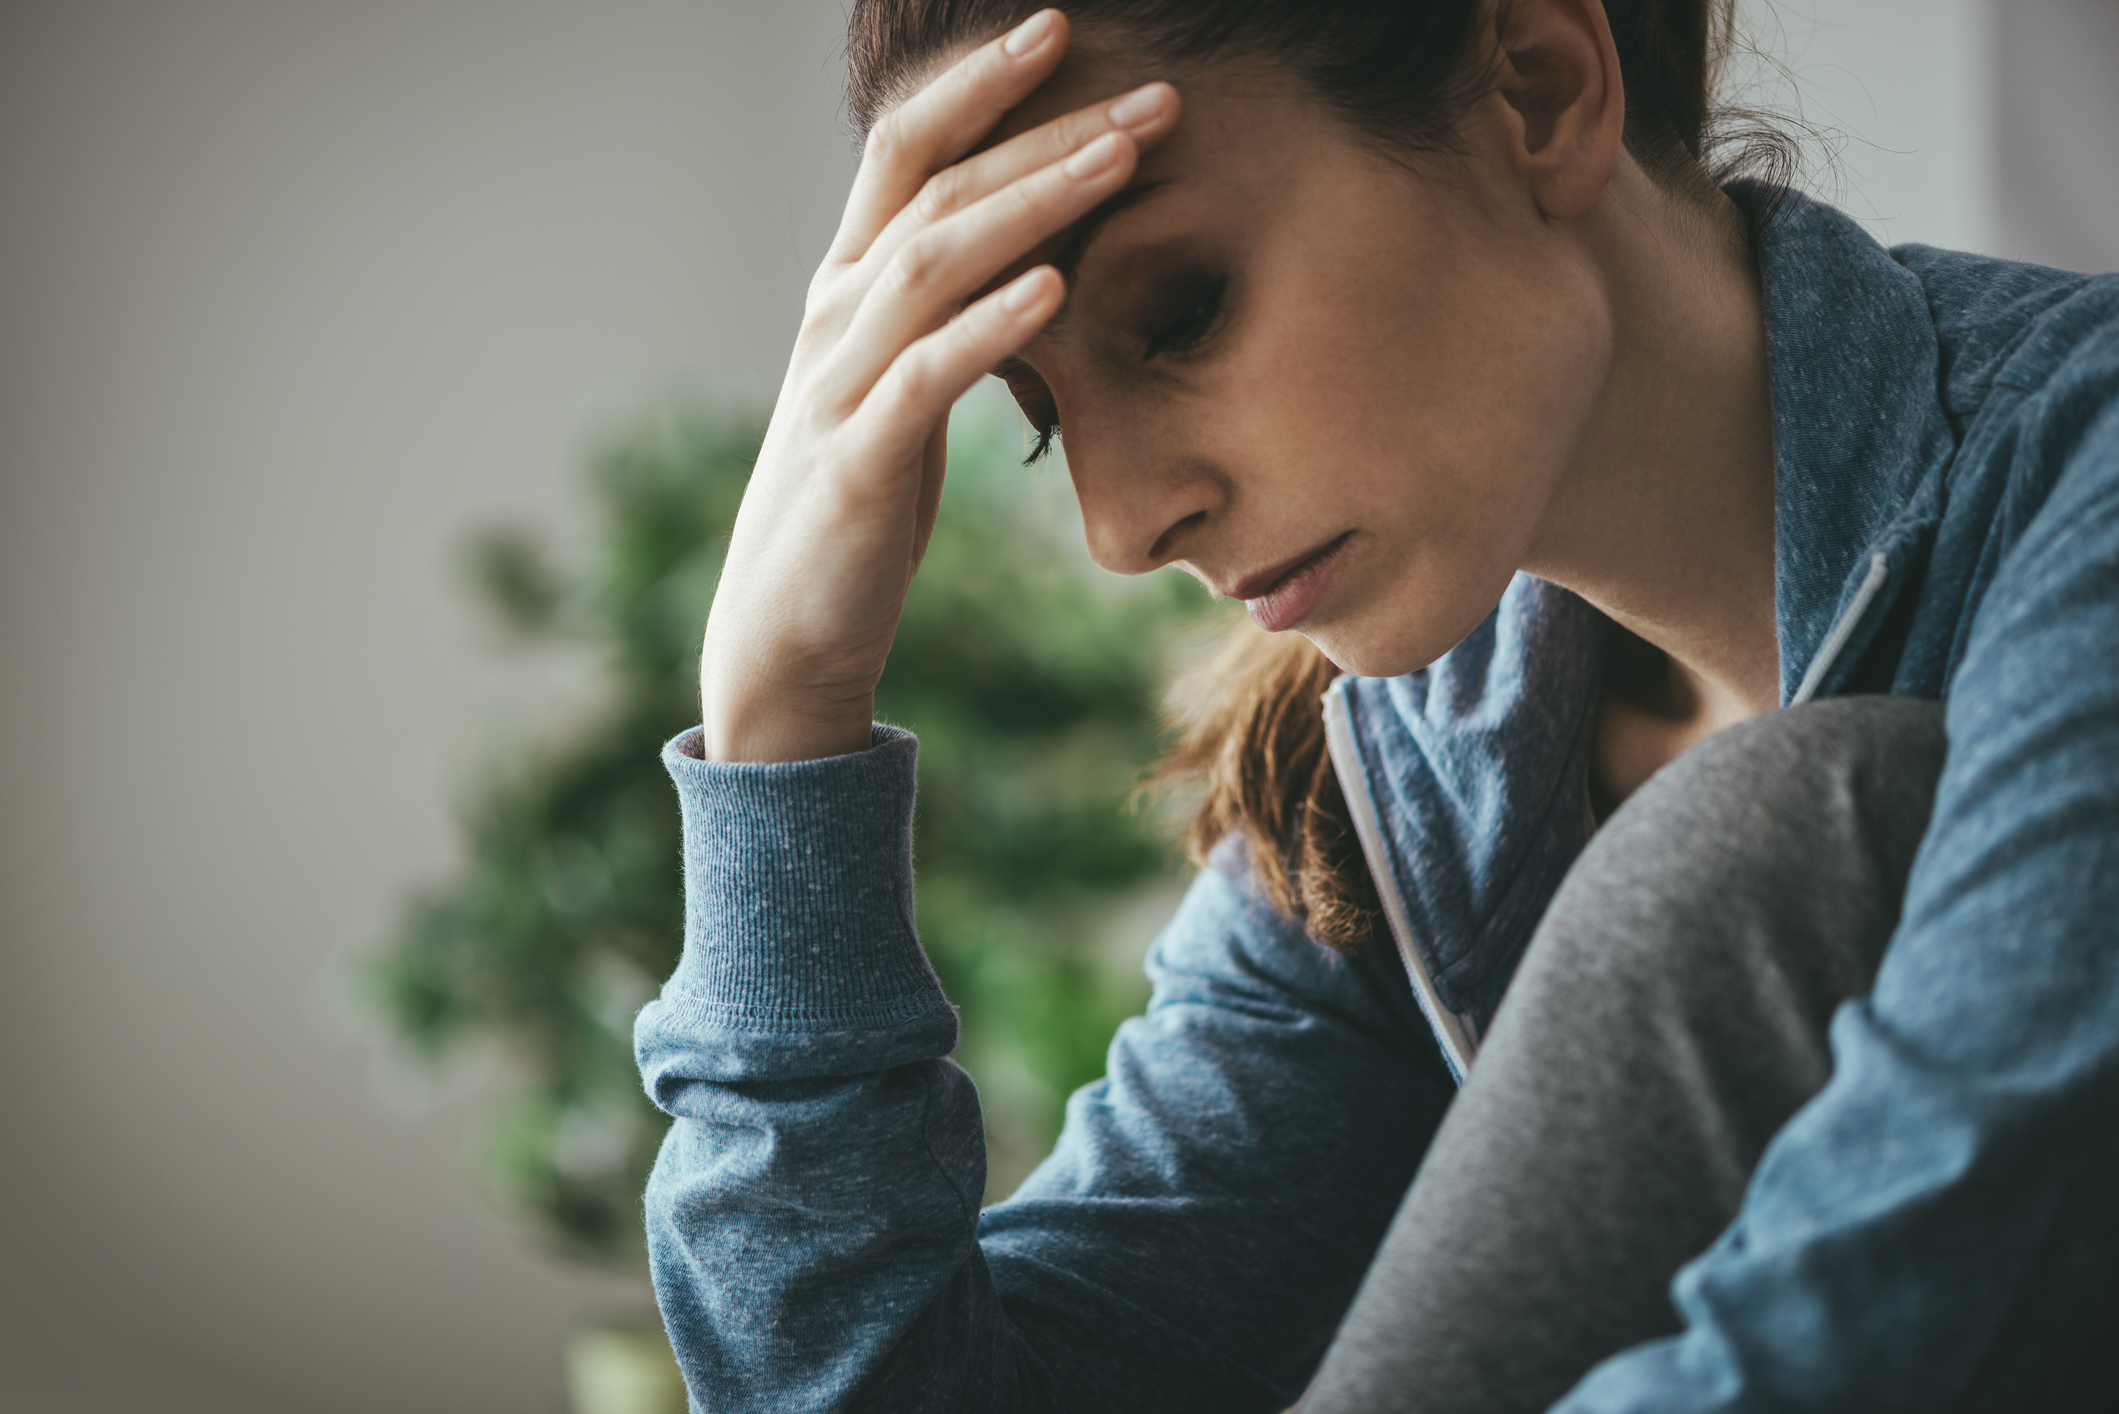 Pandemic pain: Why your chronic pain has worsened